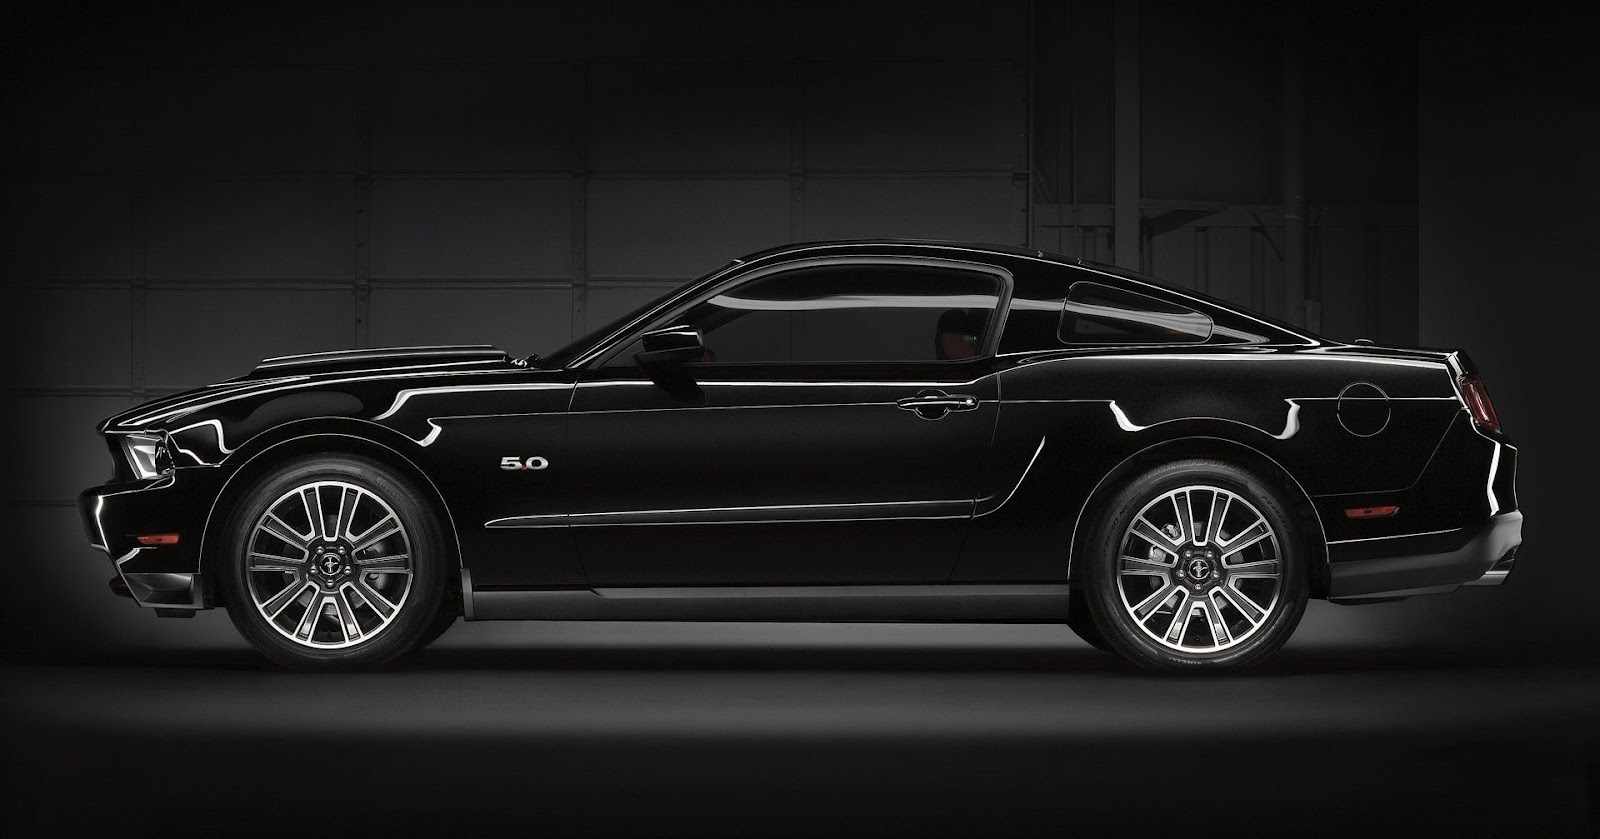 1600x839 - Ford Mustang GT Wallpapers 27